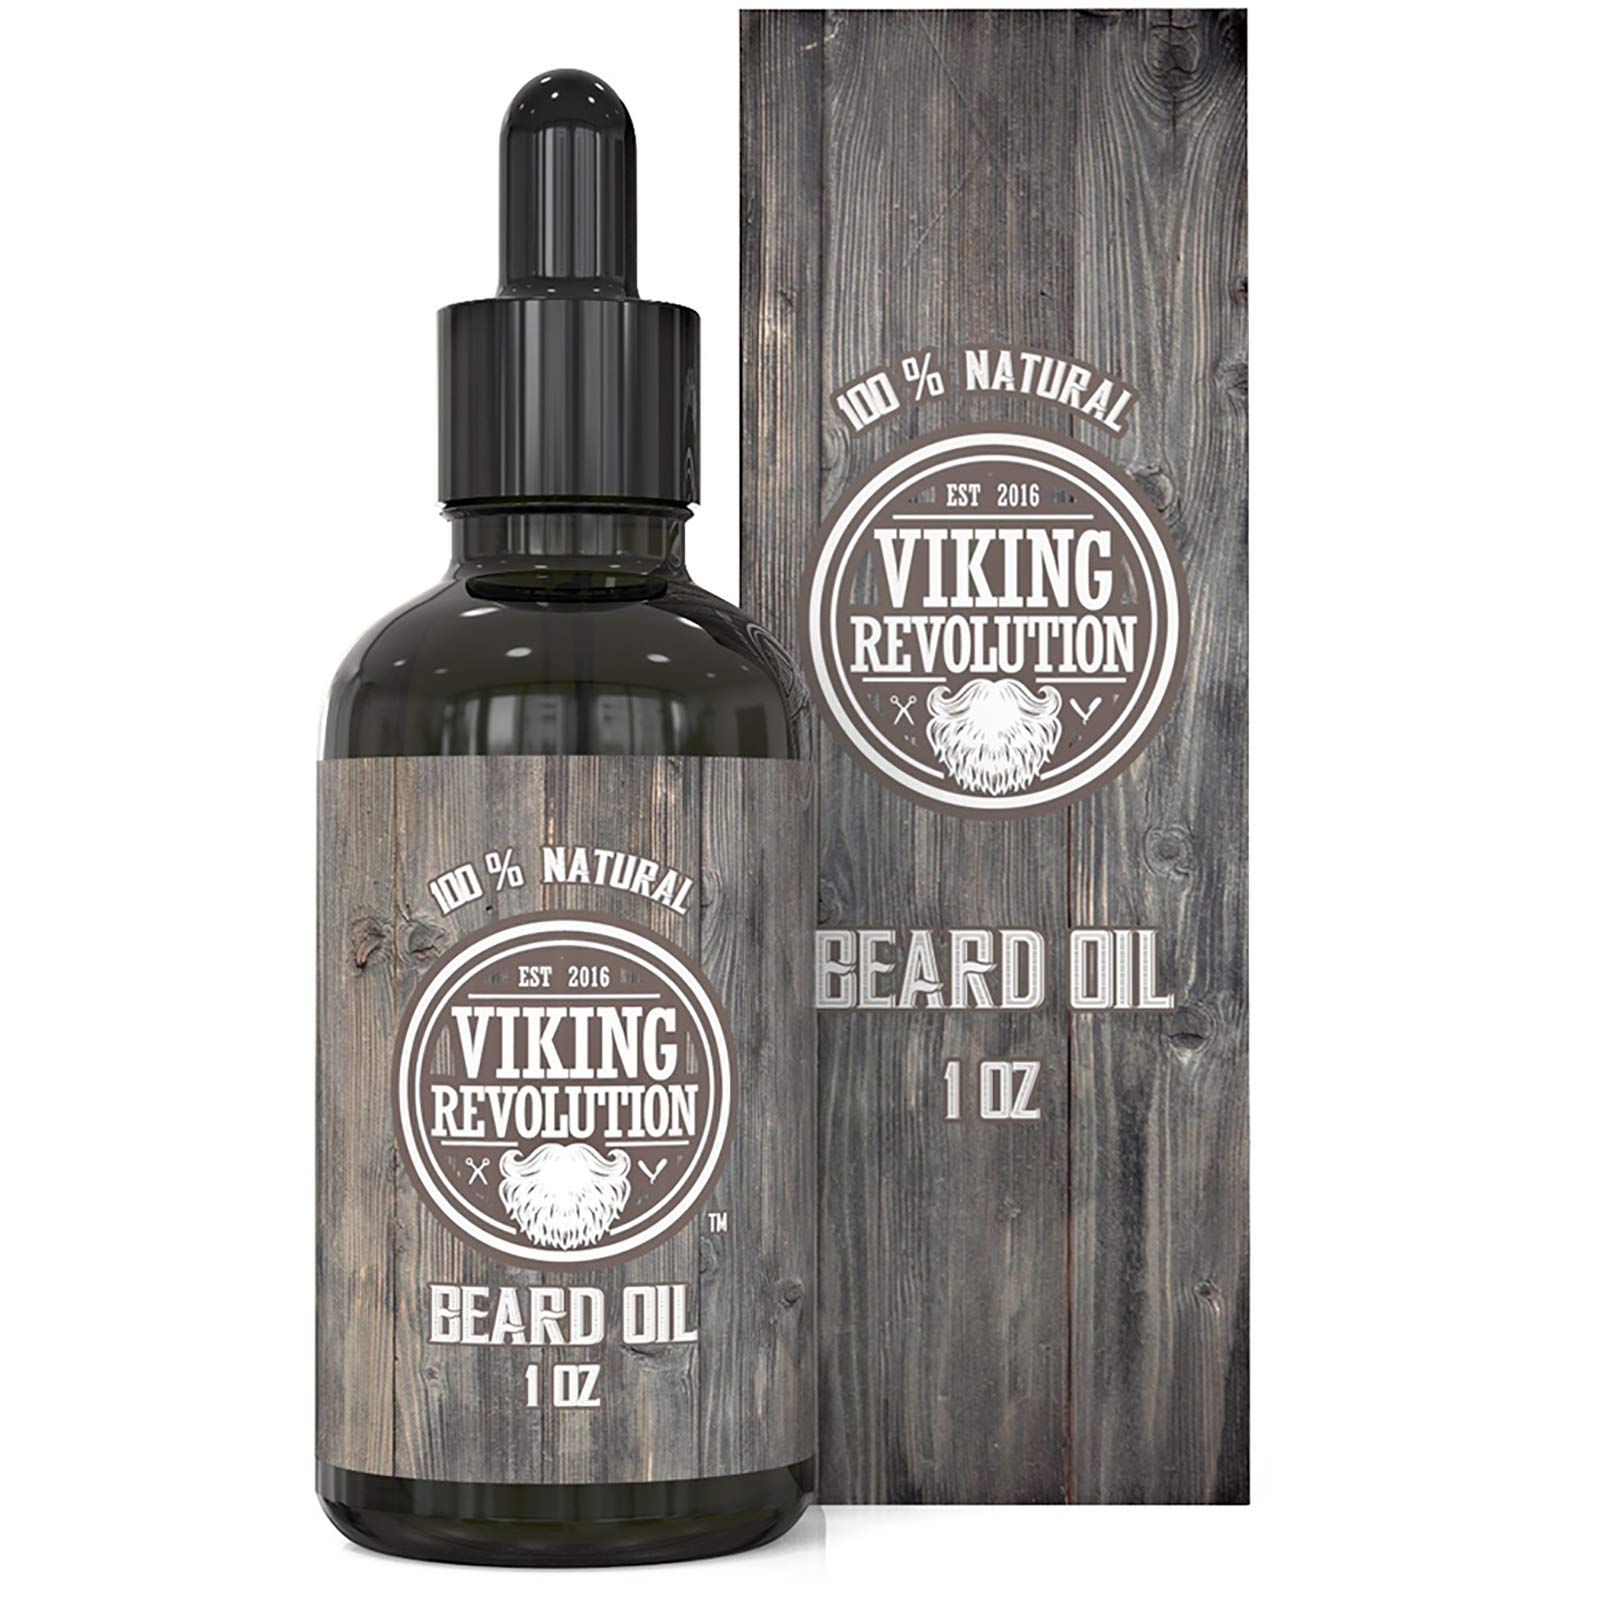 Viking Revolution Beard Oil Conditioner - All Natural Unscented Argan & Jojoba Oils – Softens, Smooths & Strengthens Beard Growth – Grooming Beard and Mustache Maintenance Treatment, 1 Pack